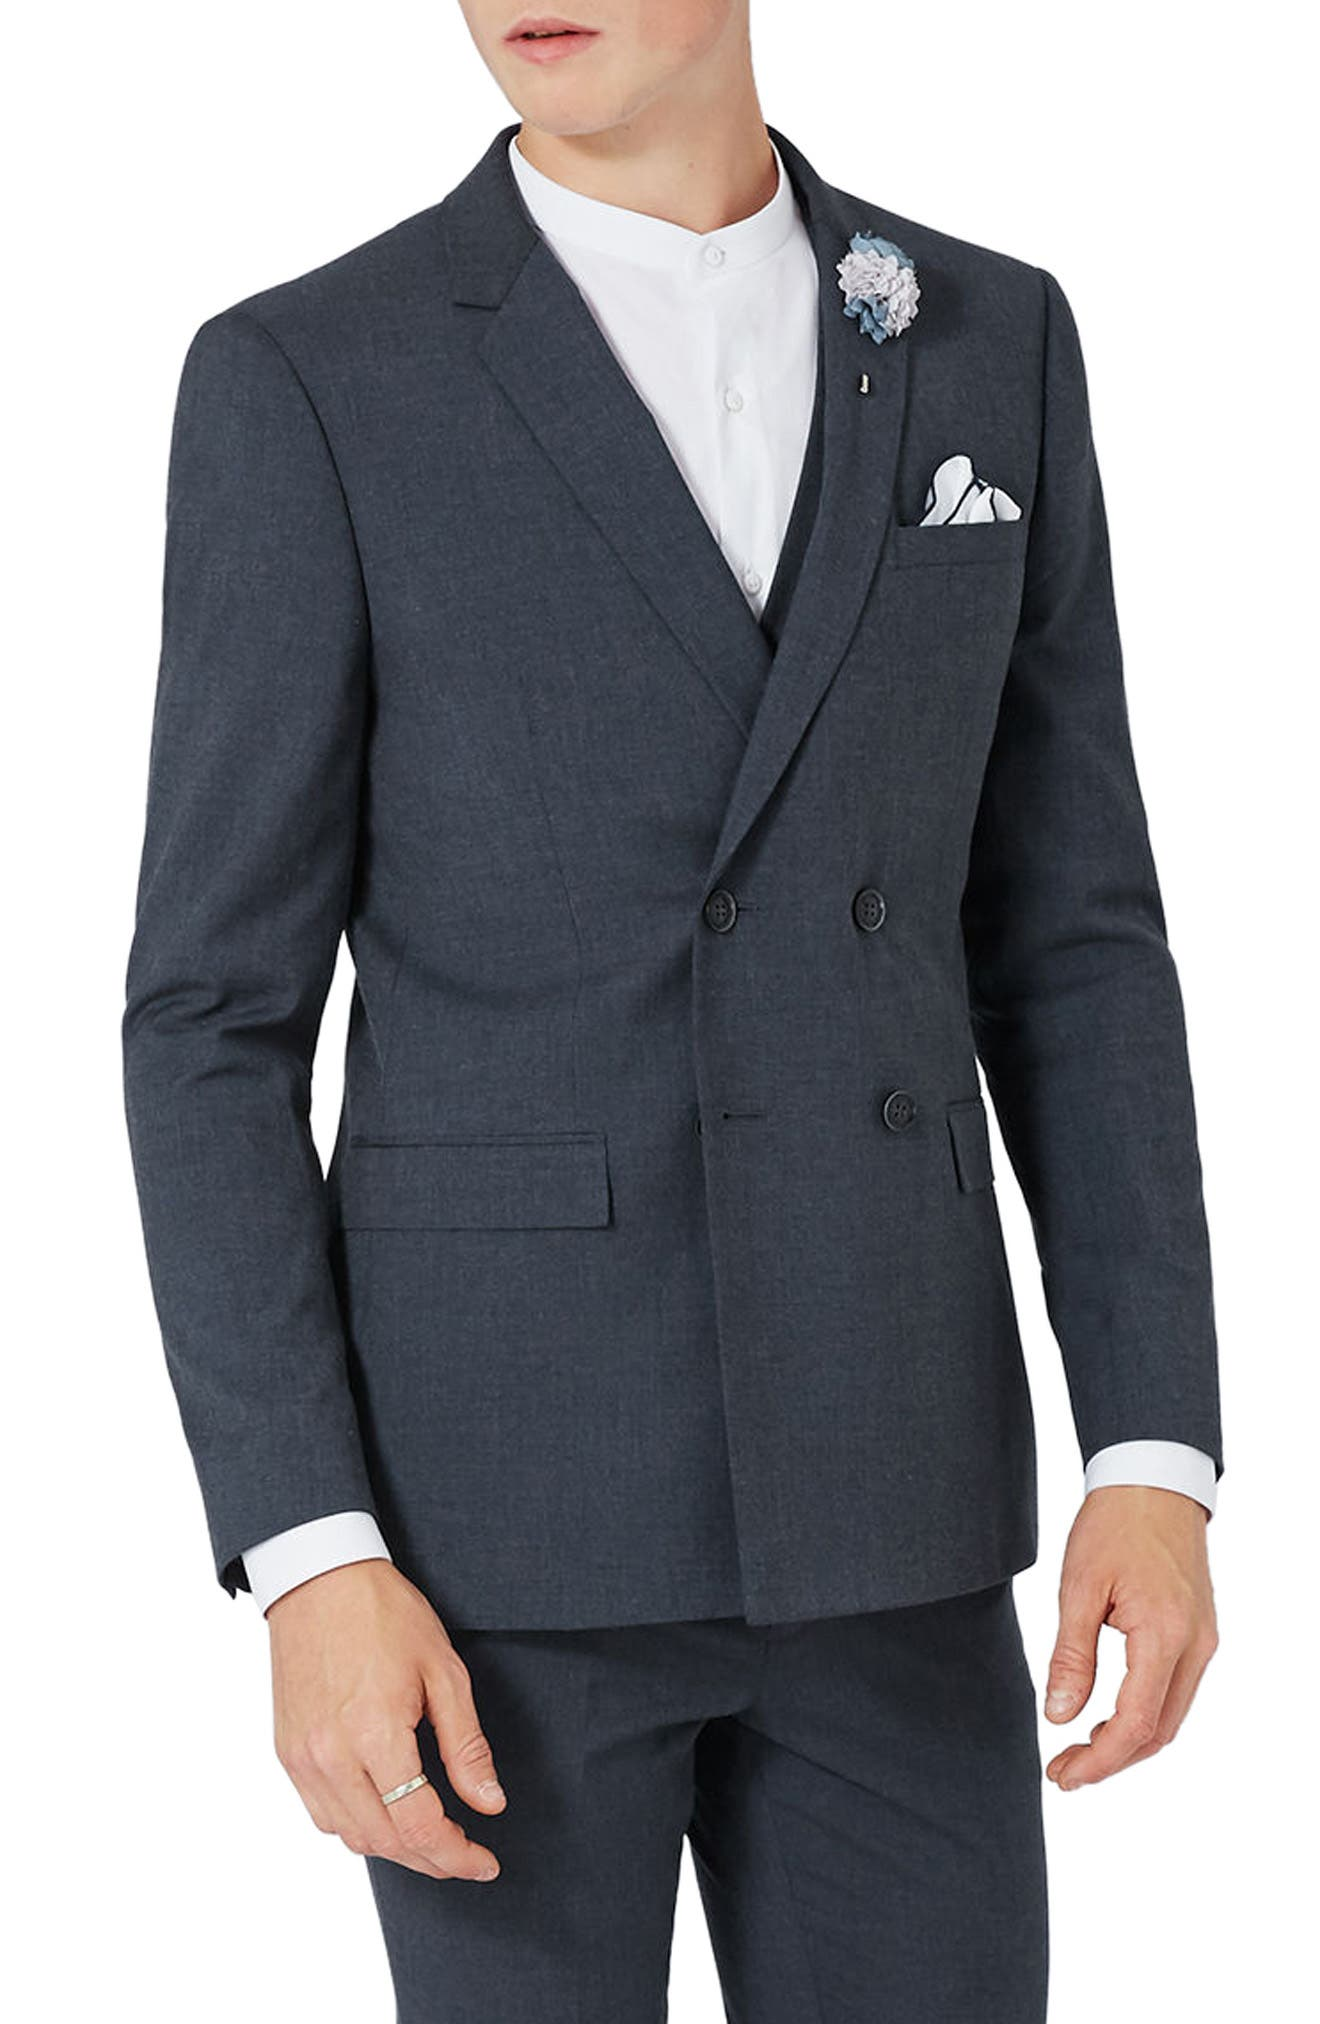 Alternate Image 1 Selected - Topman Skinny Fit Double Breasted Suit Jacket